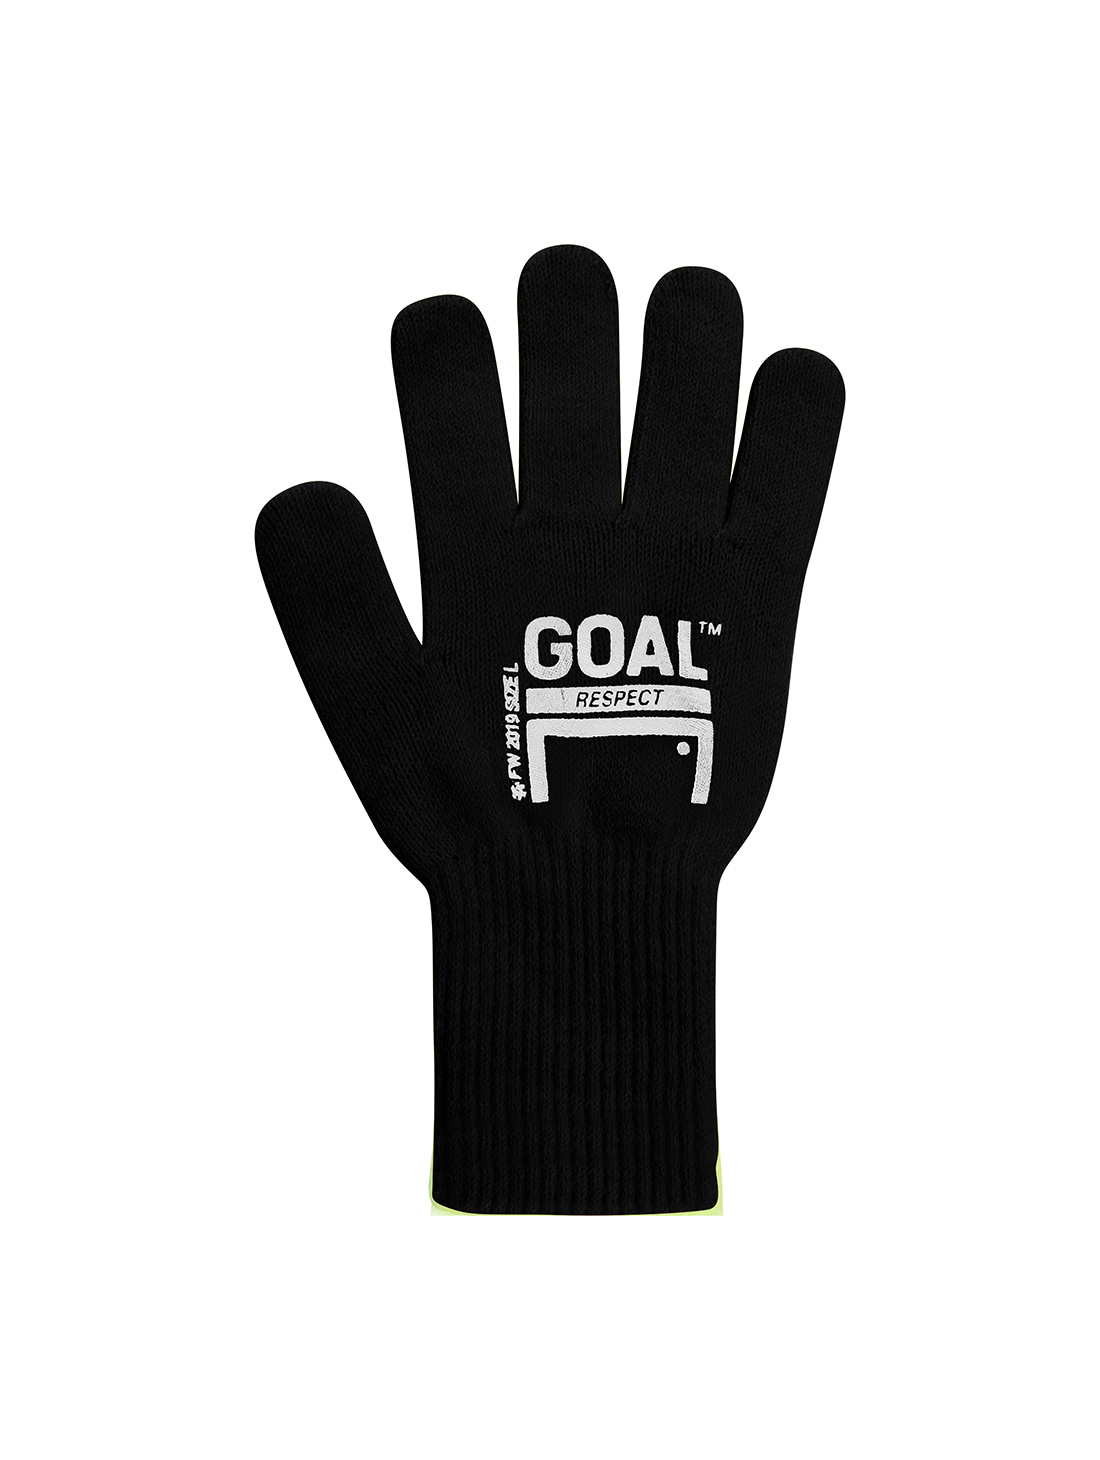 (Sold Out) GOAL GLOVE - BLACK